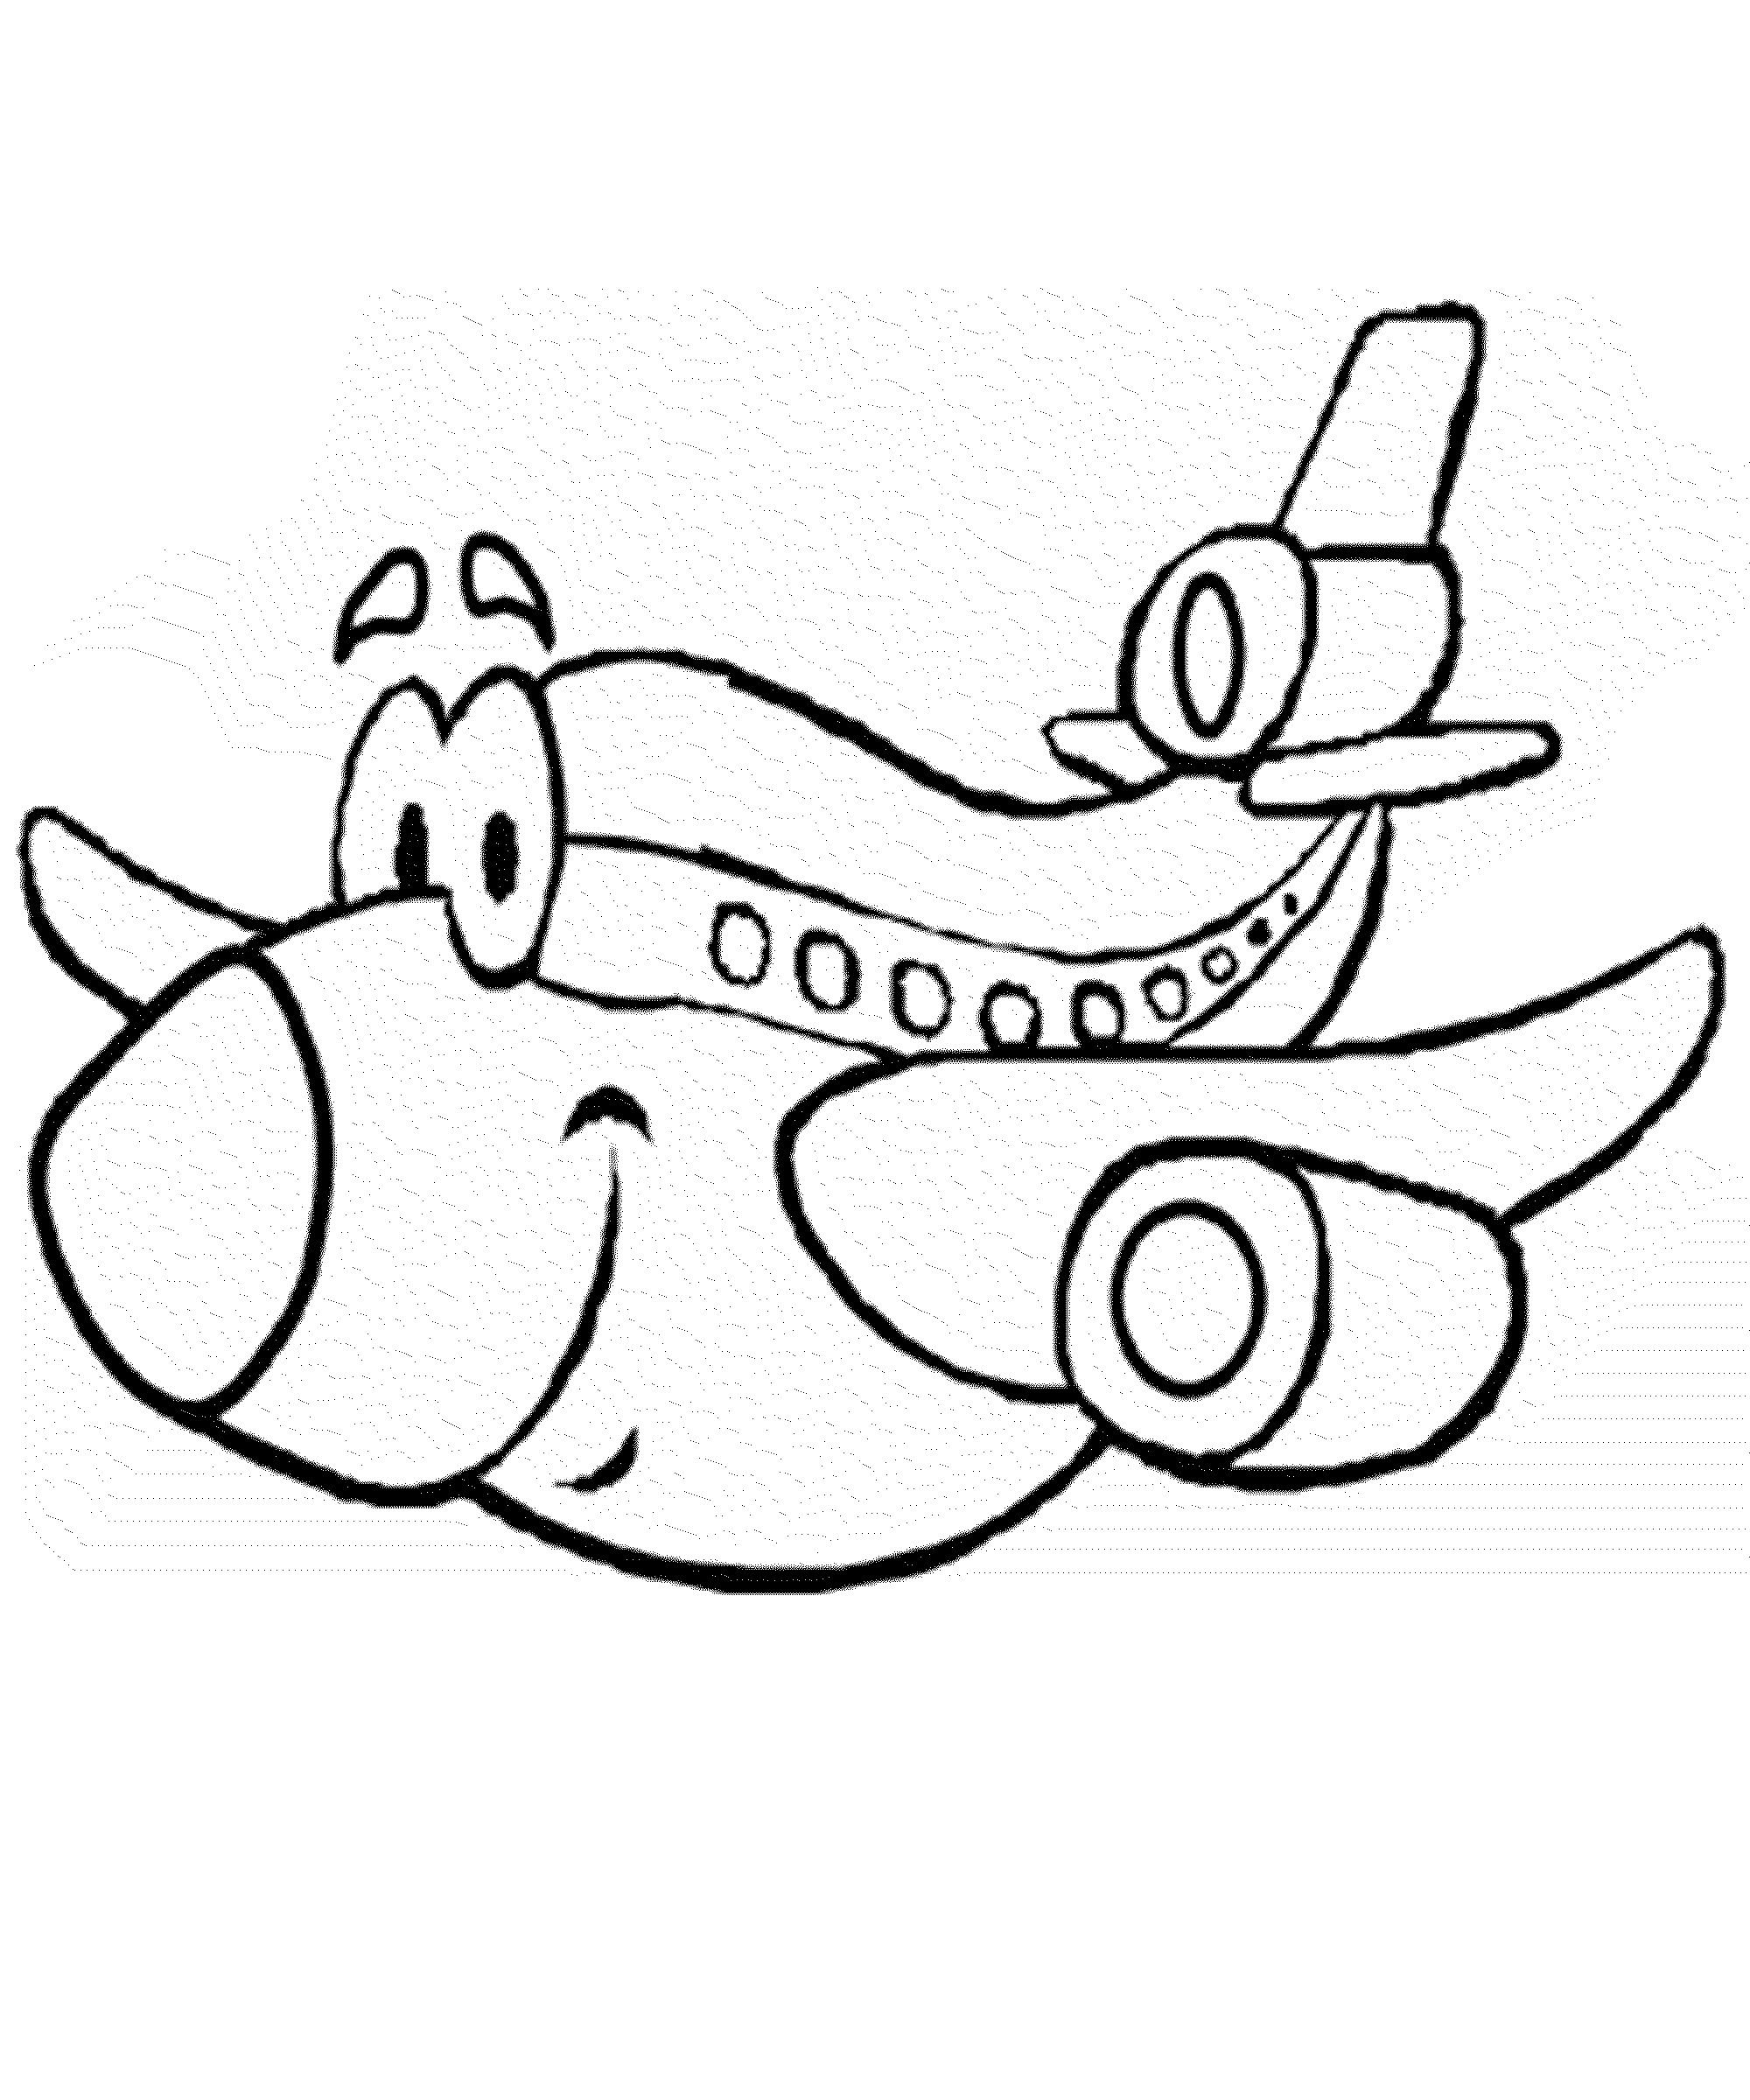 2000x2400 Security Airplane Coloring Pages For Preschool Acpra